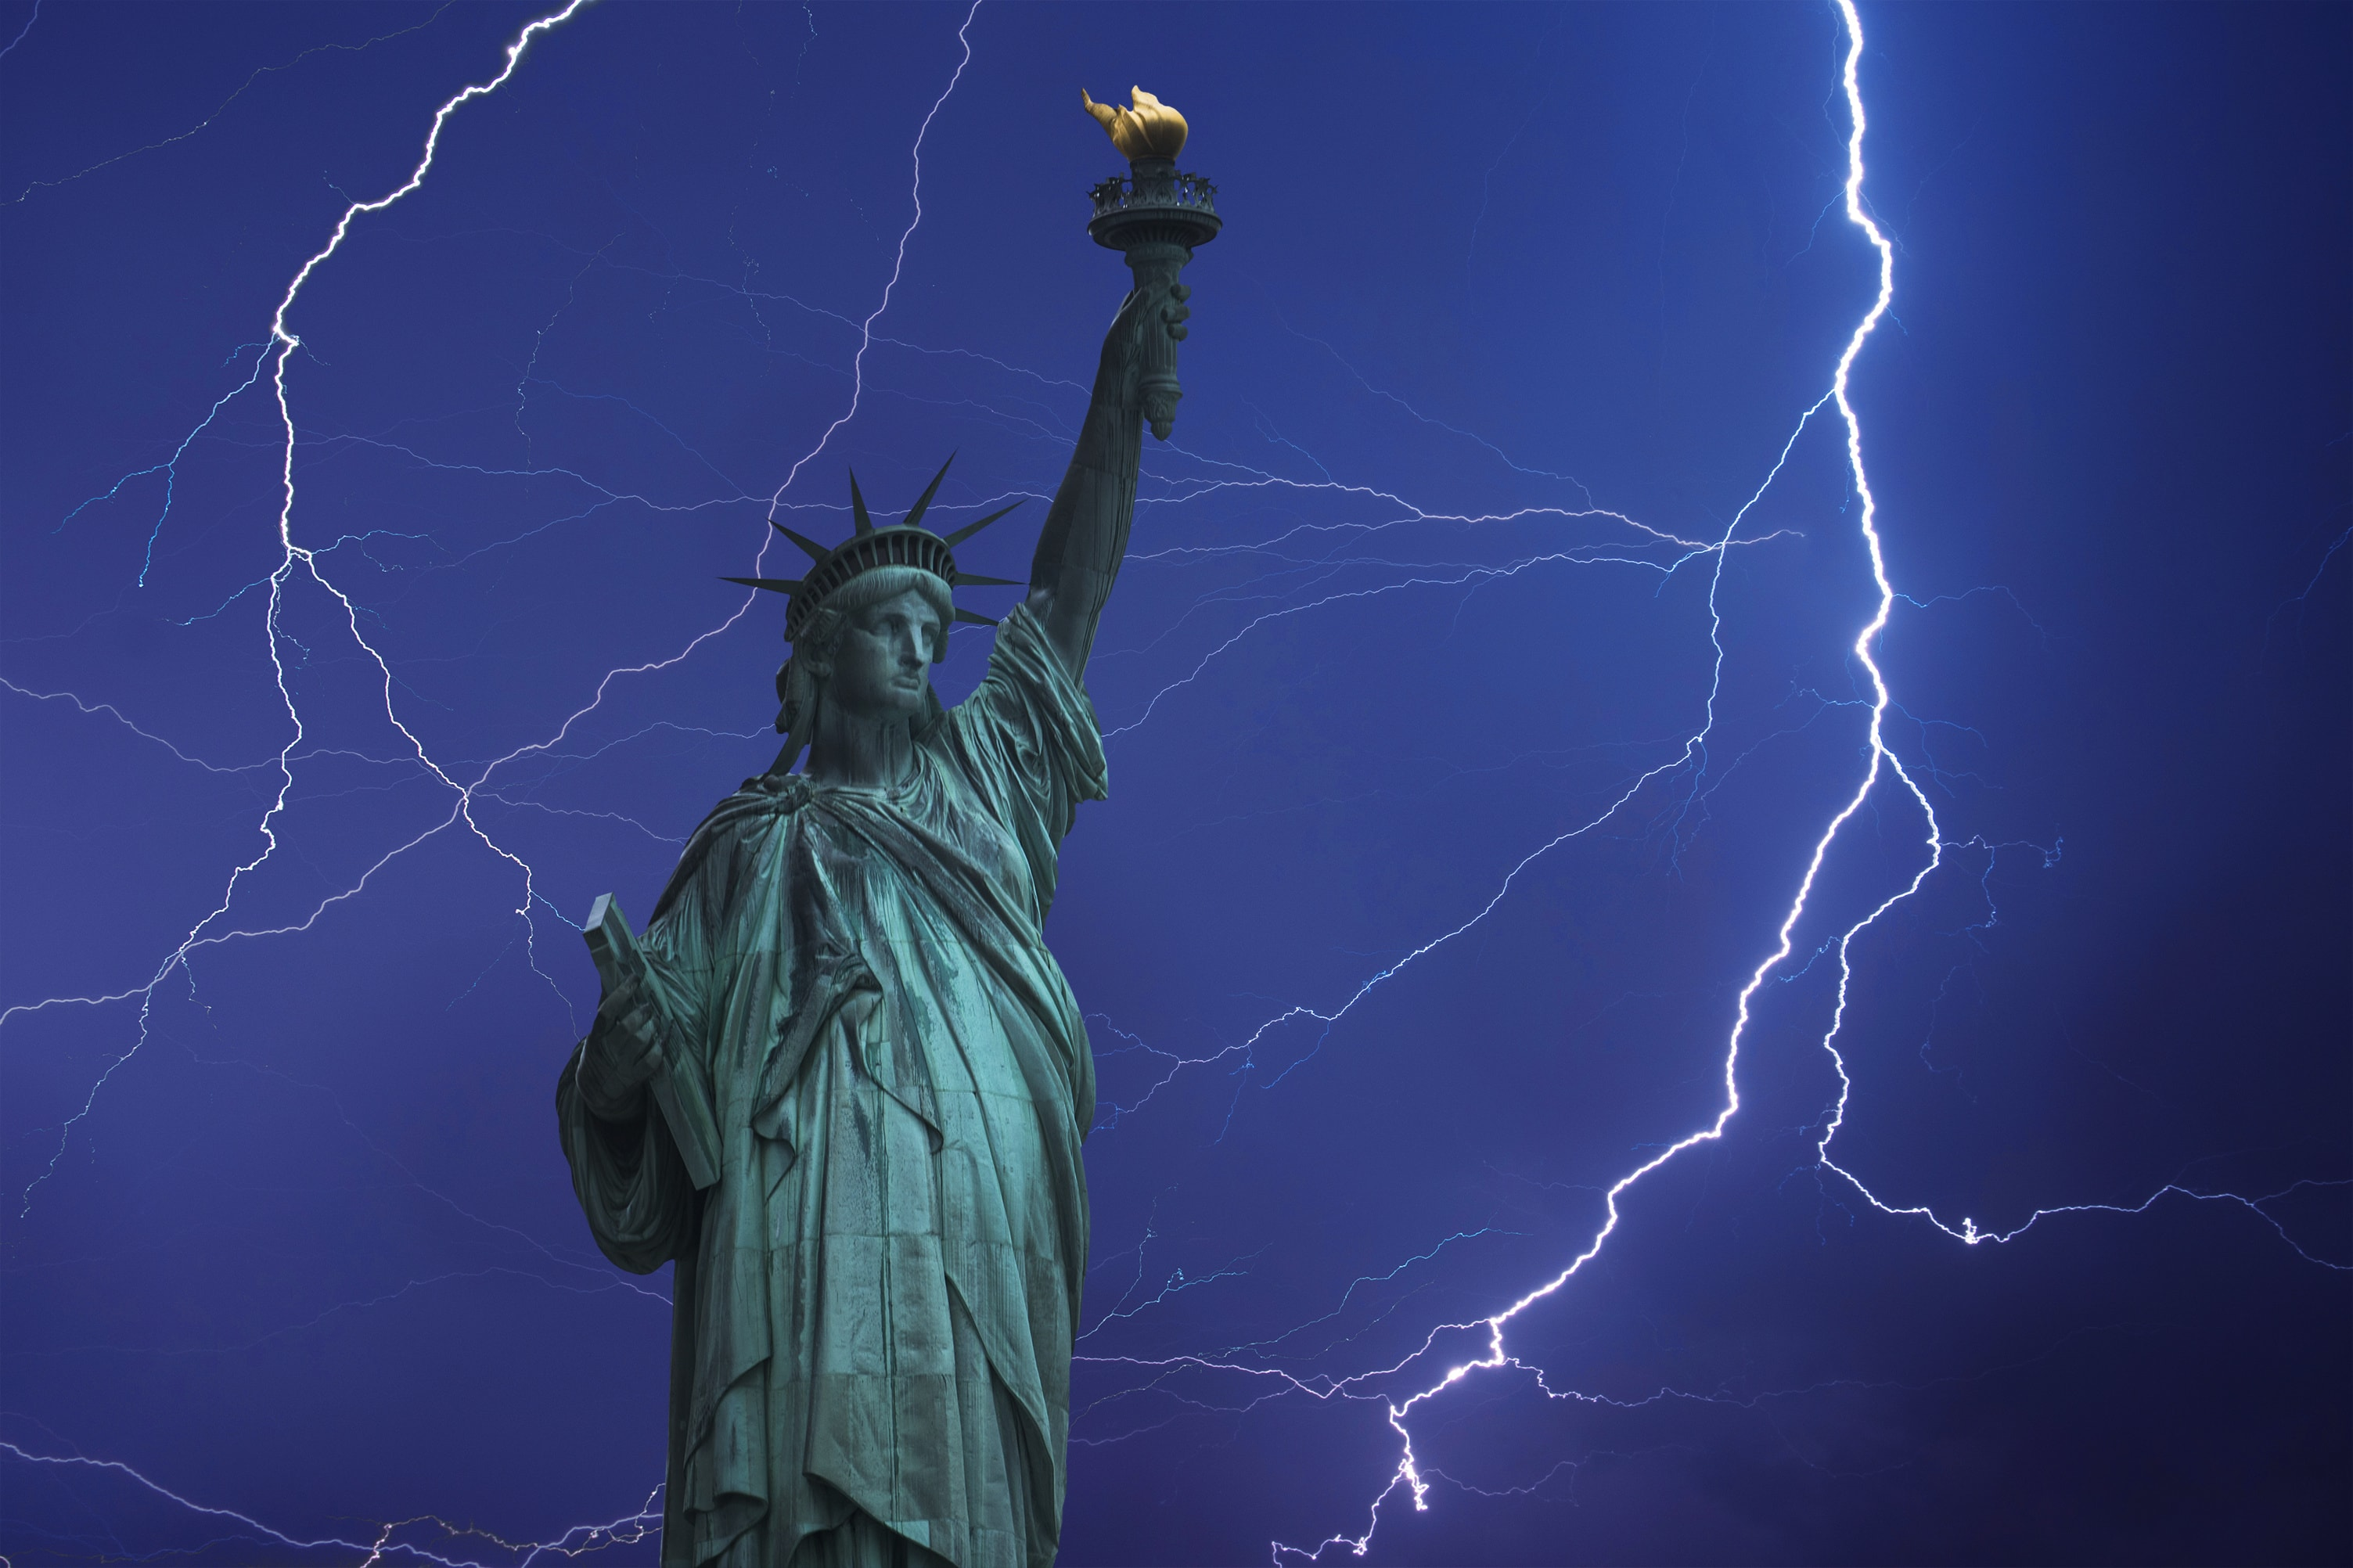 New-york-city-staten-island-lightning-storm-damage